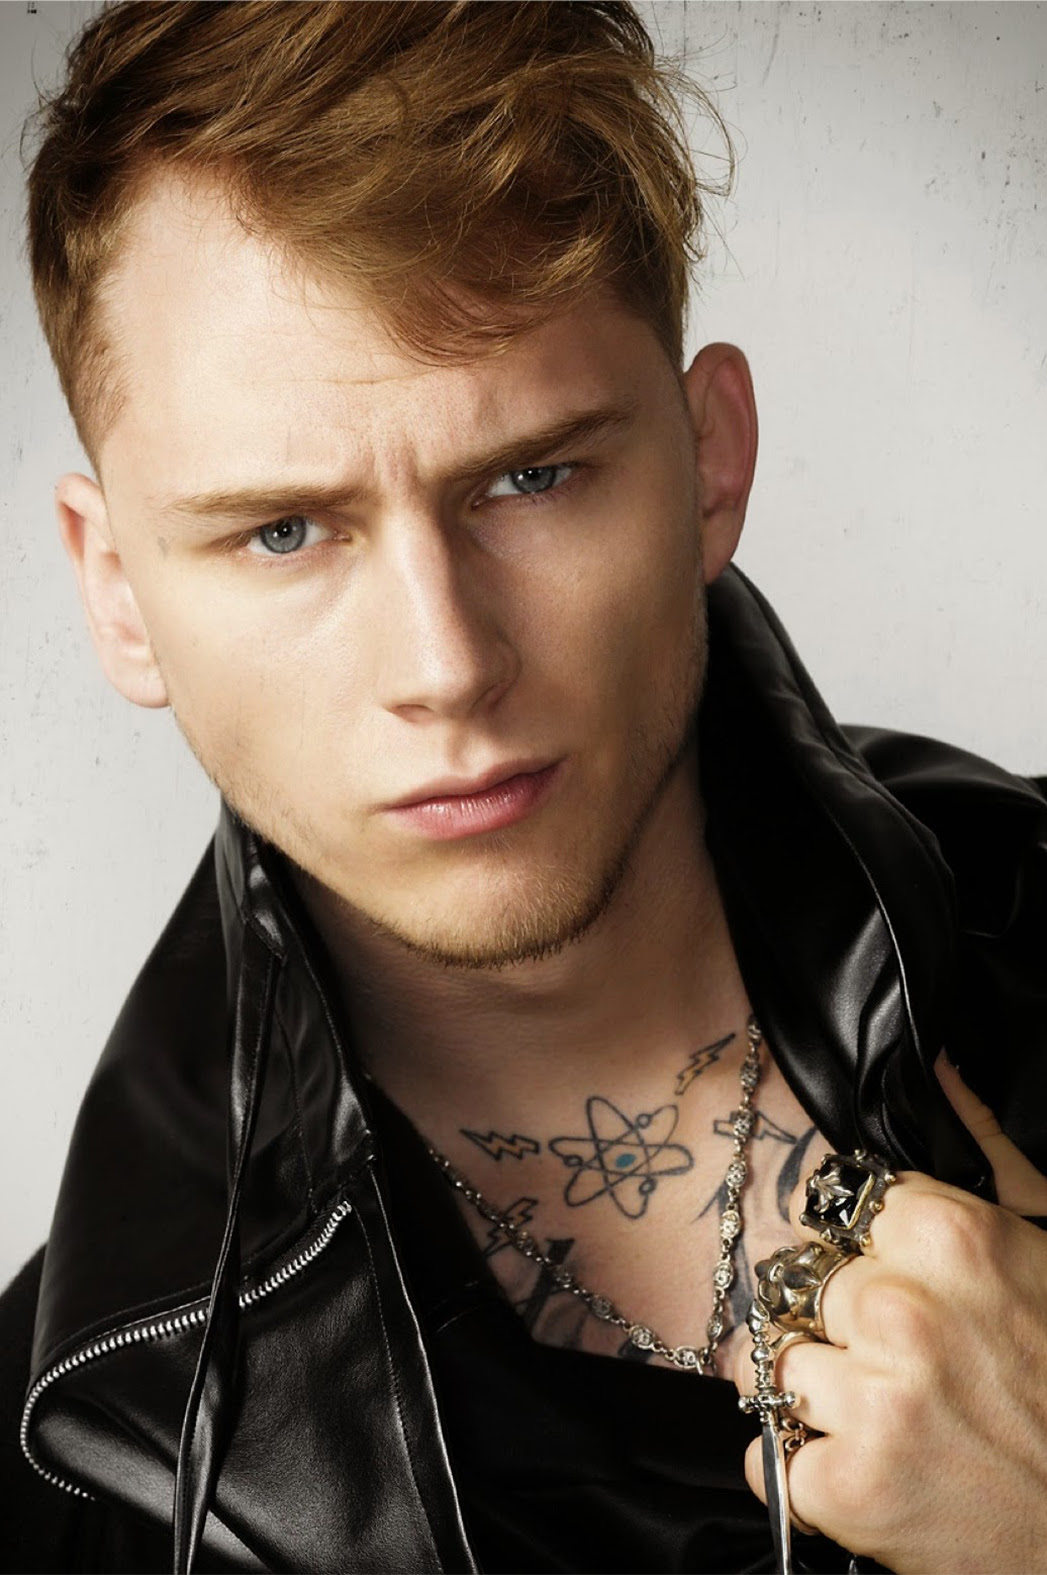 Machine Gun Kelly Wallpapers High Quality | Download Free